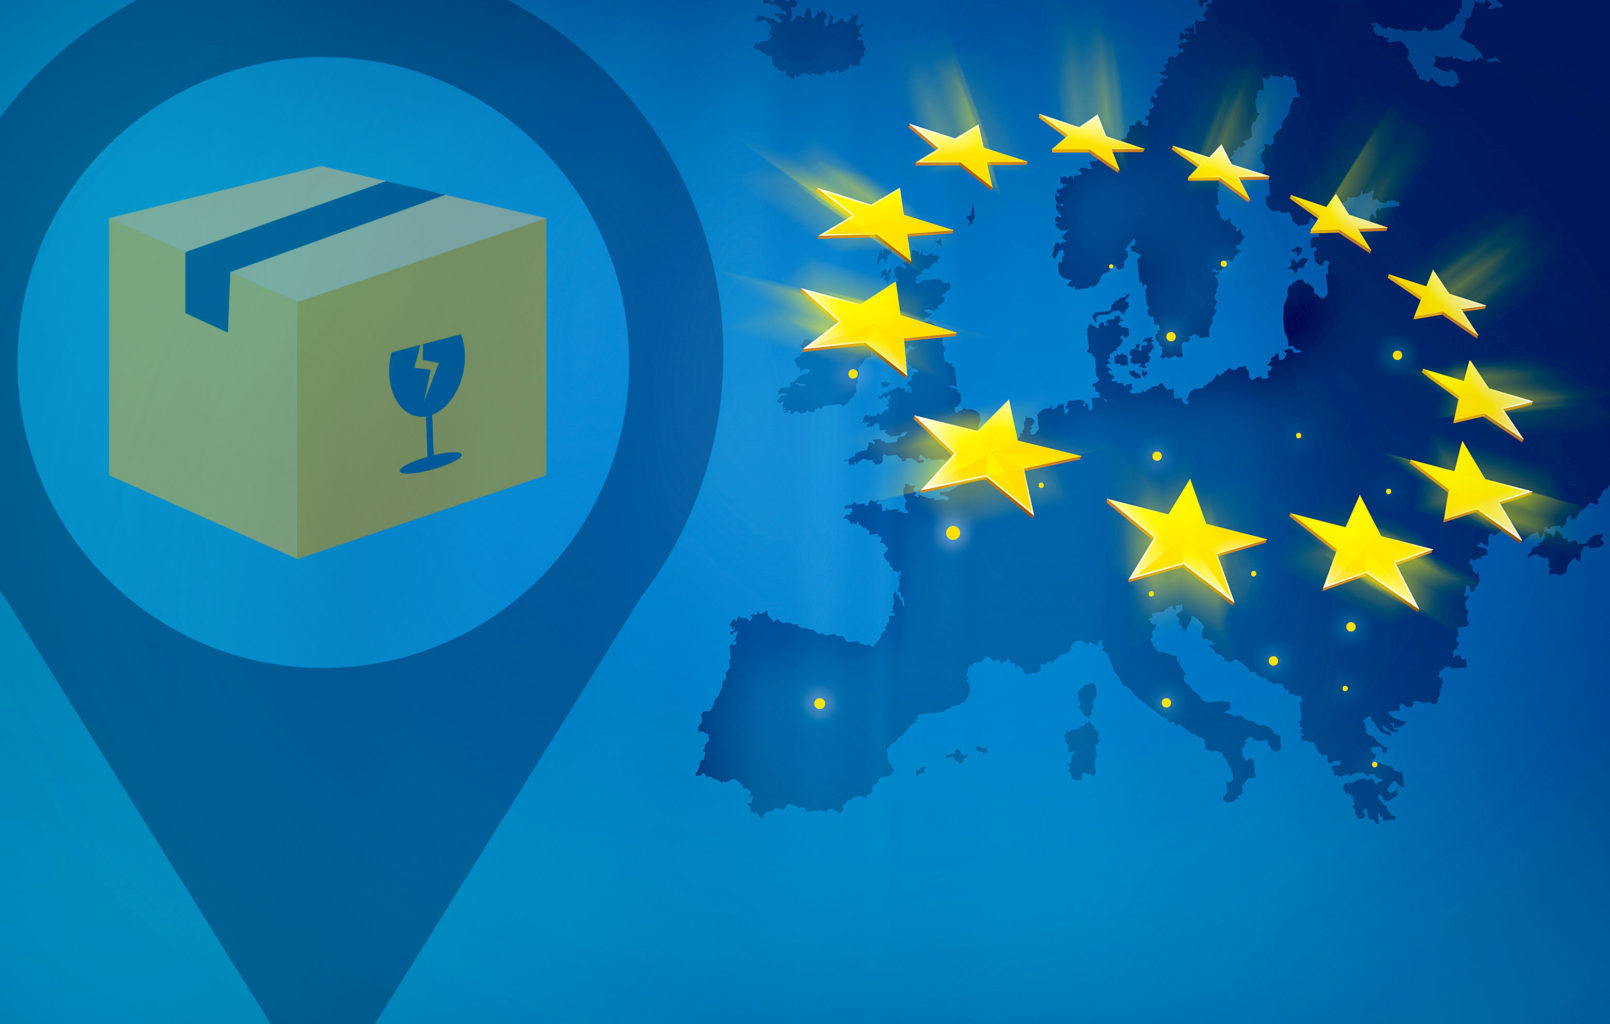 (Pan)Europäische Fulfillment – Lager & Logistik – European Fulfillment Services